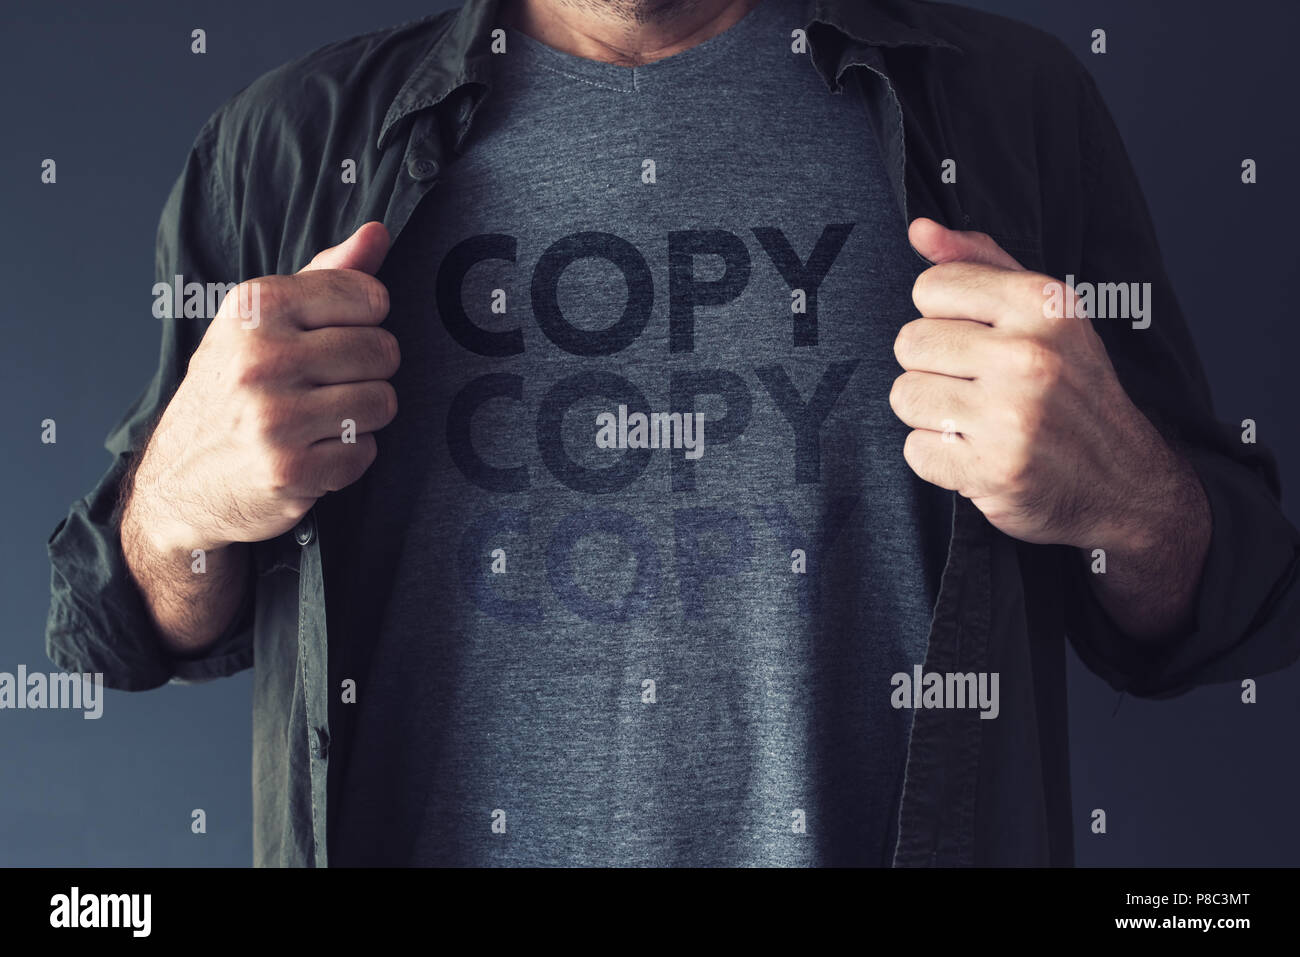 Copycat and plagiarism concept, repeating word Copy is fading on guy's t-shirt - Stock Image